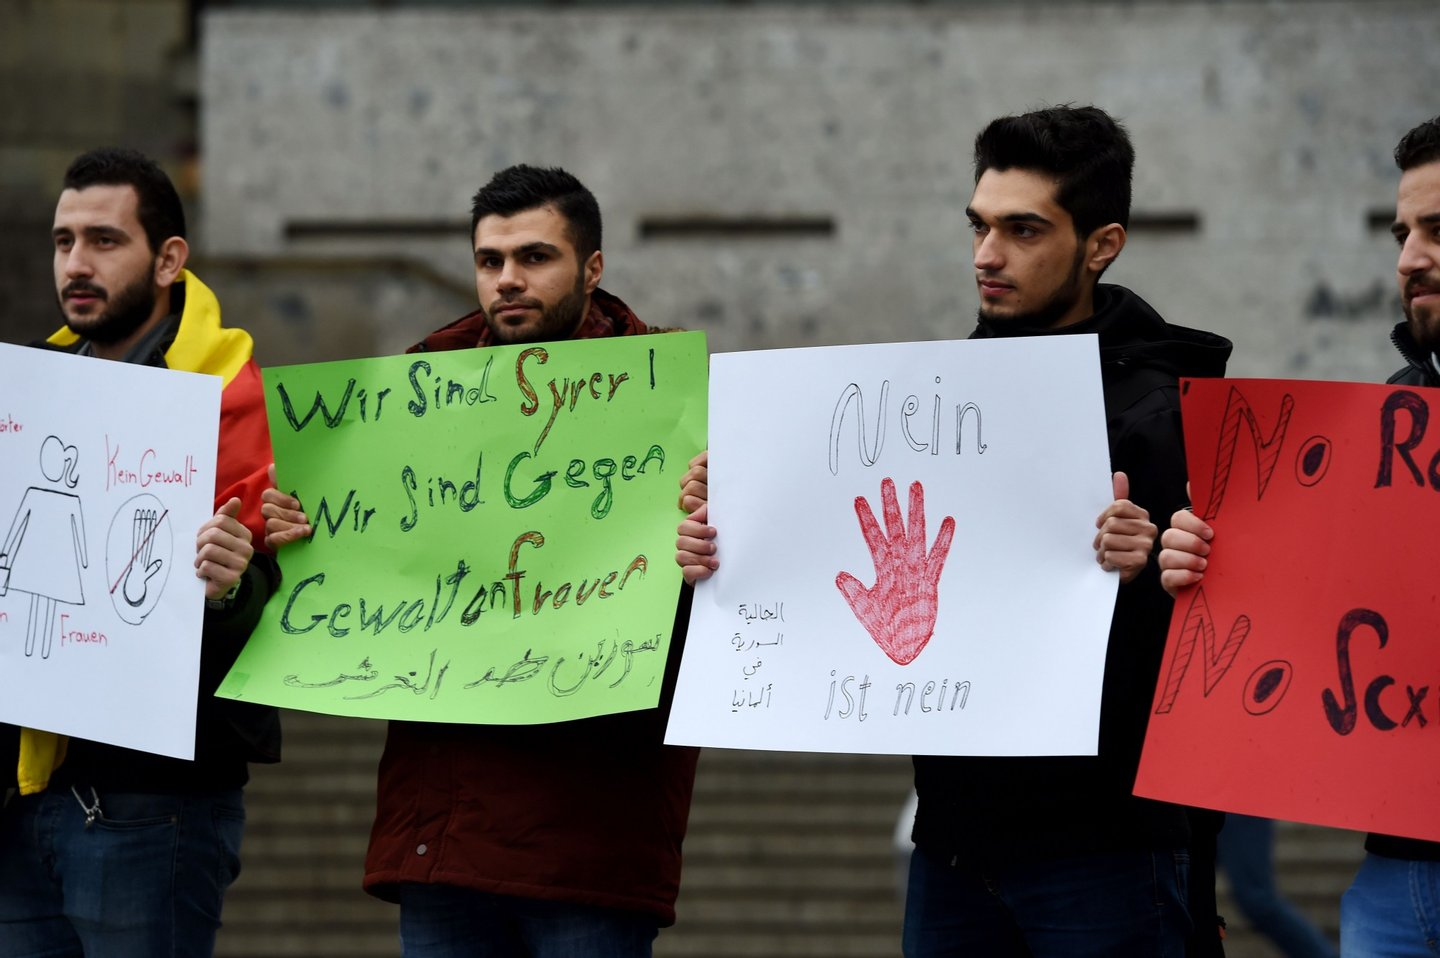 """Refugees from Syria hold a sign reading """"we are syrians-we are against violence against women"""" as they demonstrate against violence at the Cologne main train station in Cologne, western Germany on January 16, 2016 where violence against women were perpetrated on New Year's Eve. / AFP / PATRIK STOLLARZ (Photo credit should read PATRIK STOLLARZ/AFP/Getty Images)"""